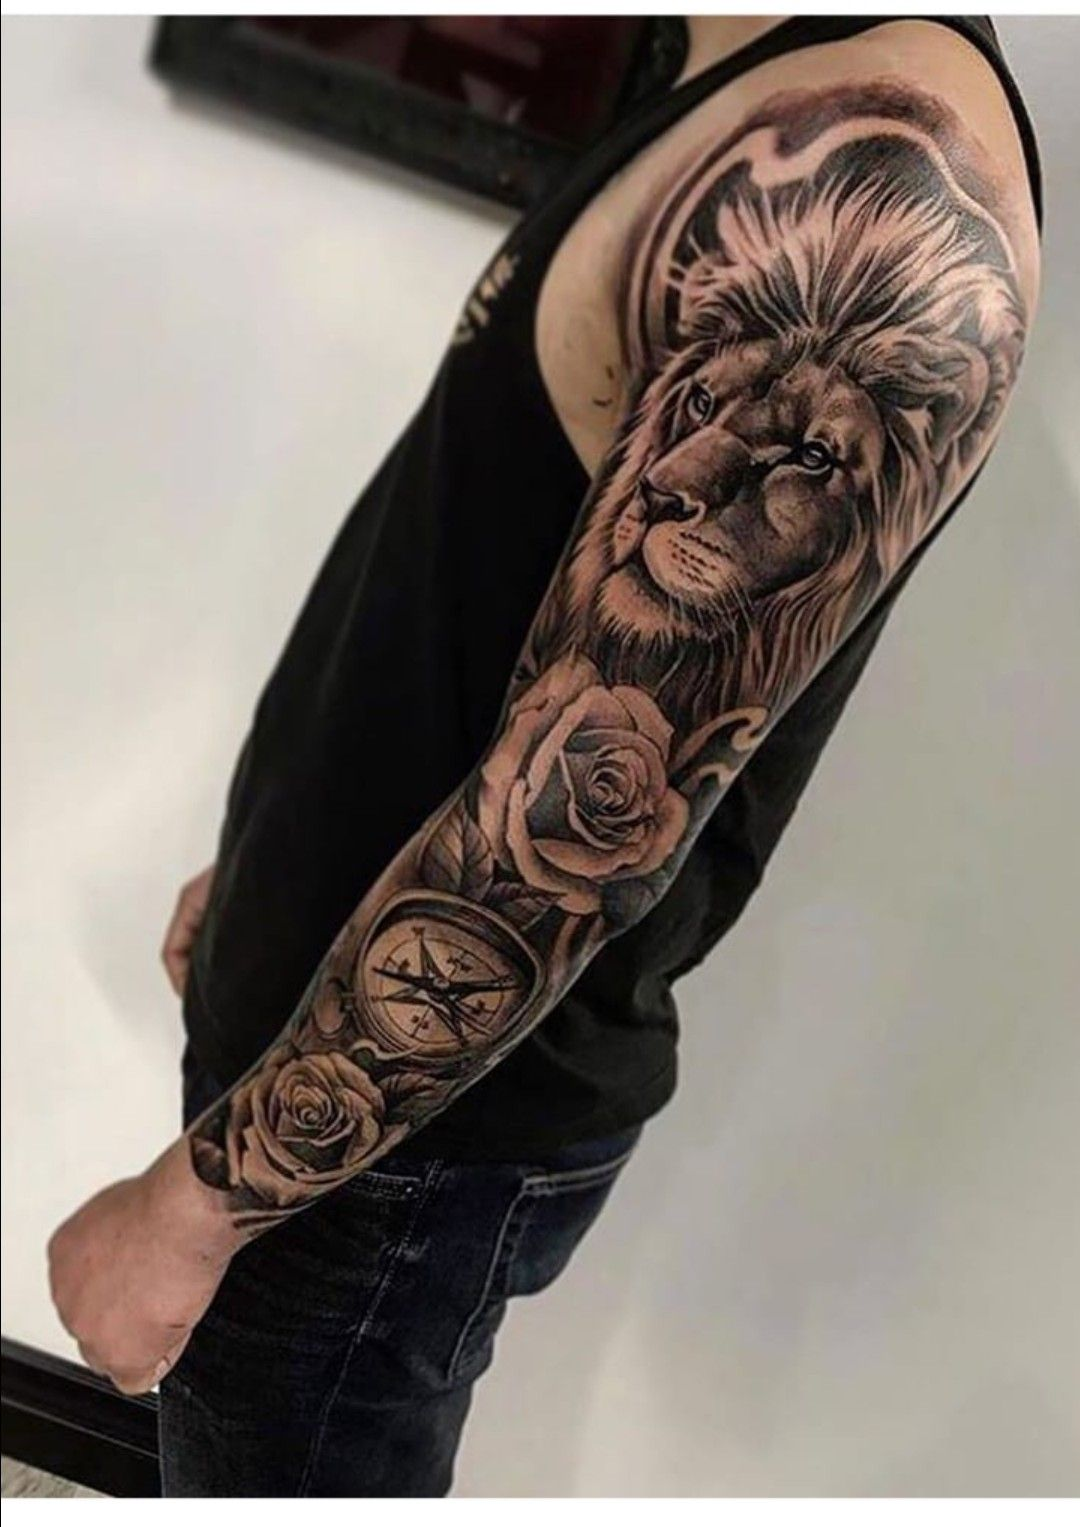 Pin By Ryan Hilton On Tattoo Ideas Badass Tattoos Rose Tattoo Sleeve Best Sleeve Tattoos